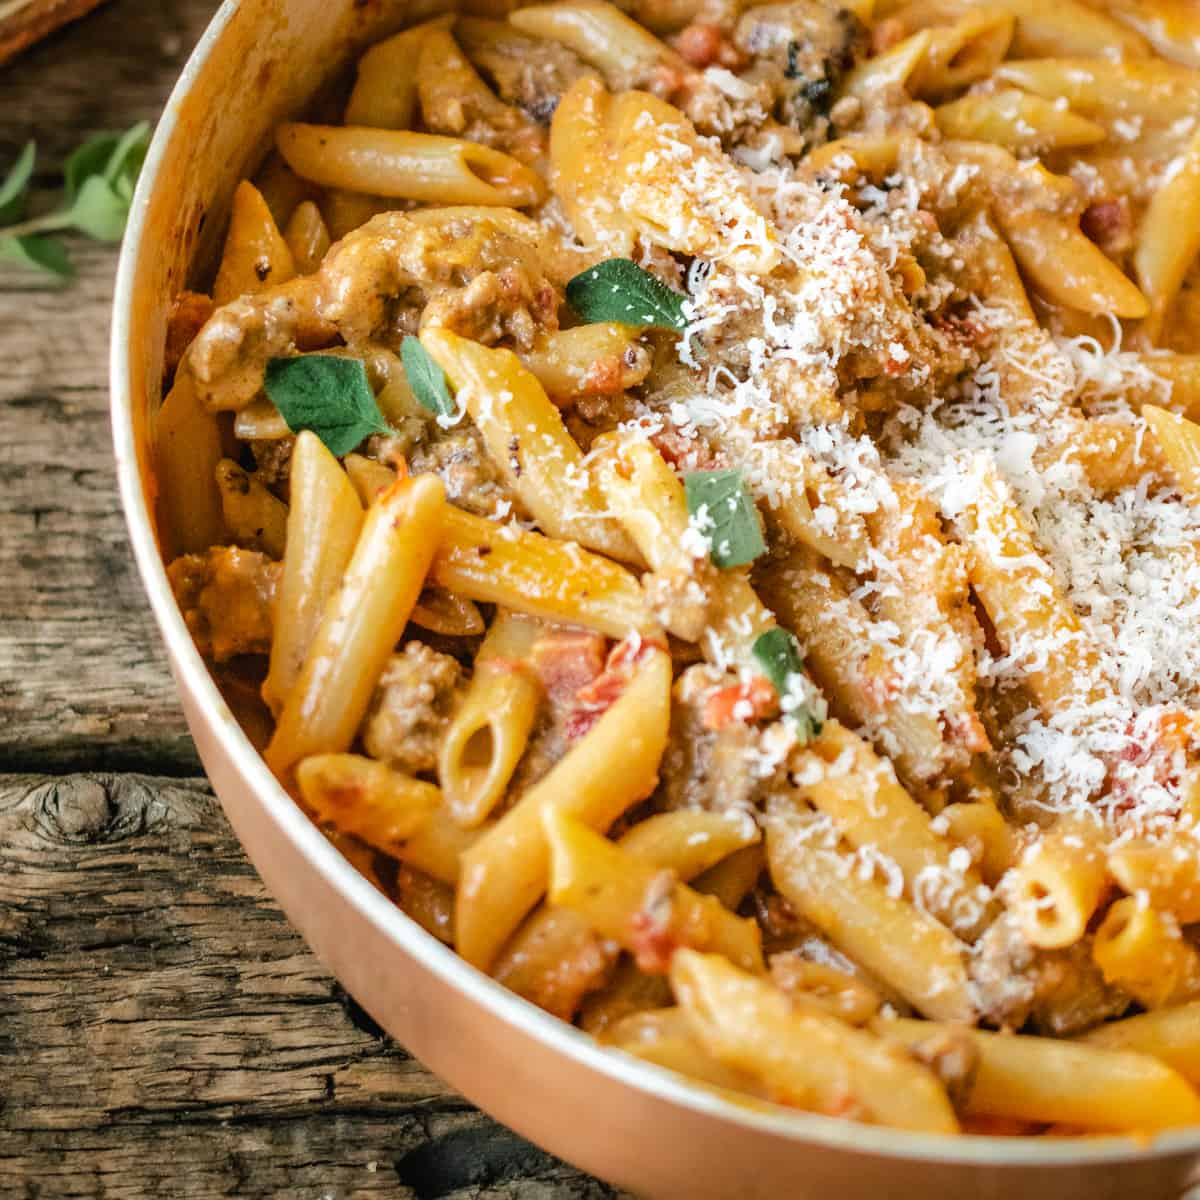 A skillet of penne pasta with vodka sauce, sausage and parmesan cheese on a rustic wooden back drop.